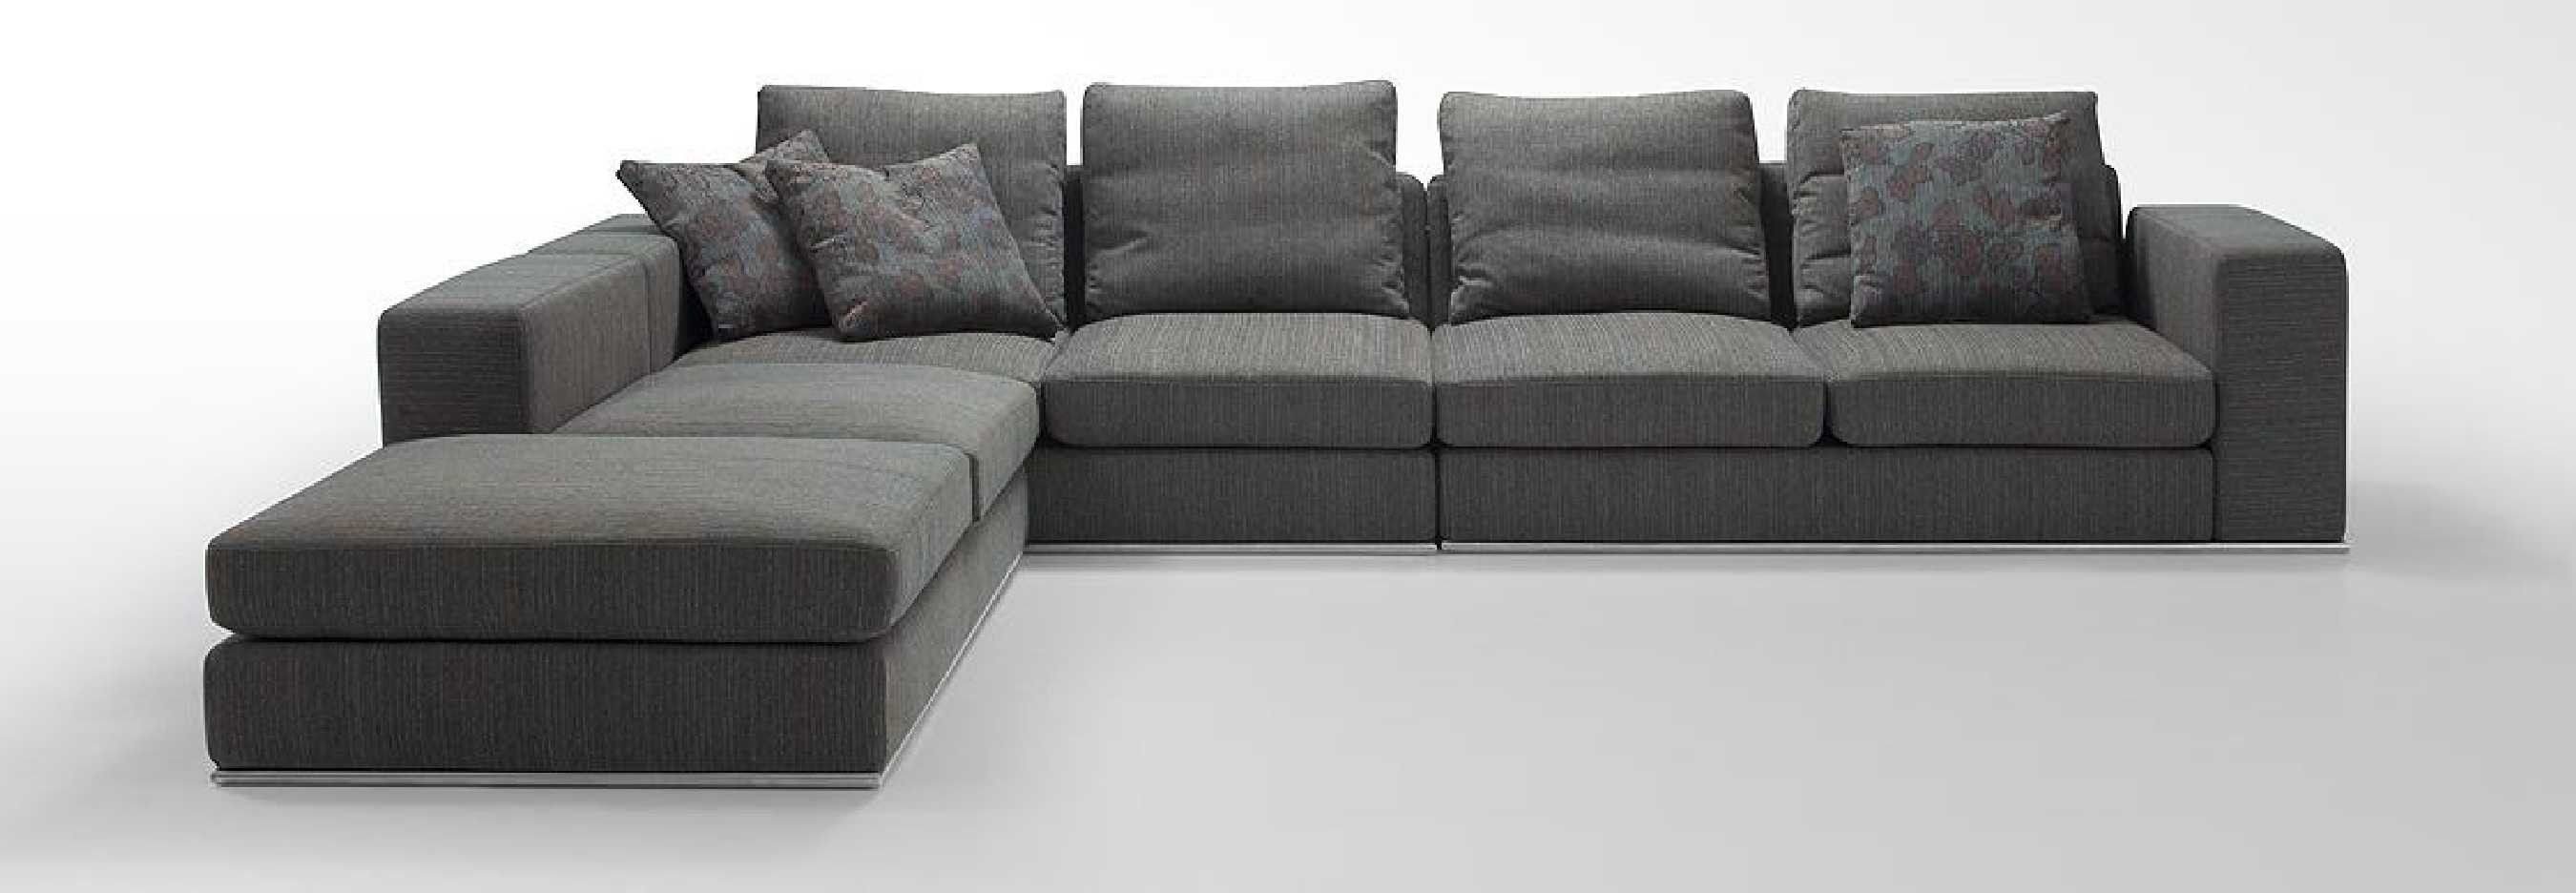 l shaped modern sofa downlow review appealing come with grey comfy fabric